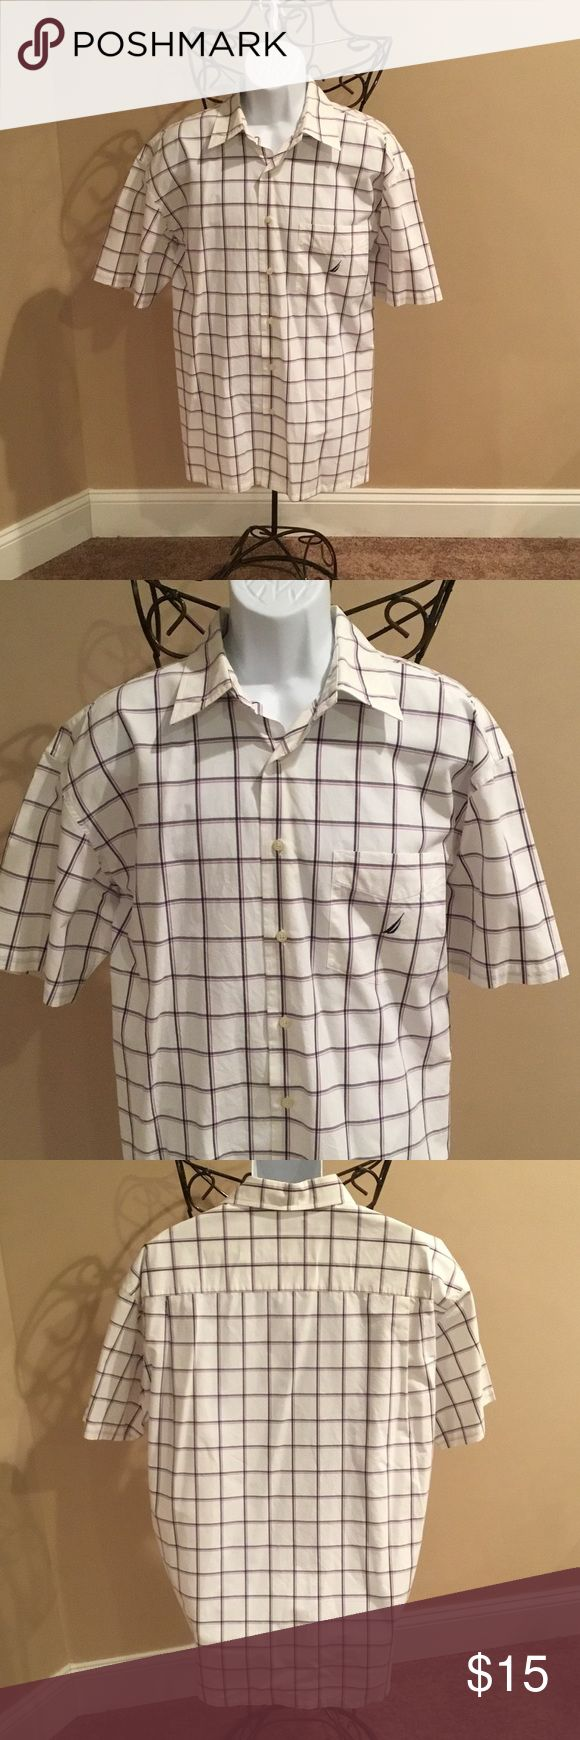 MENS SHORT-SLEEVE DRESS SHIRT WHITE WITH GREY & PINK STRIPES. 💯% COTTON.. Nautica Shirts Dress Shirts